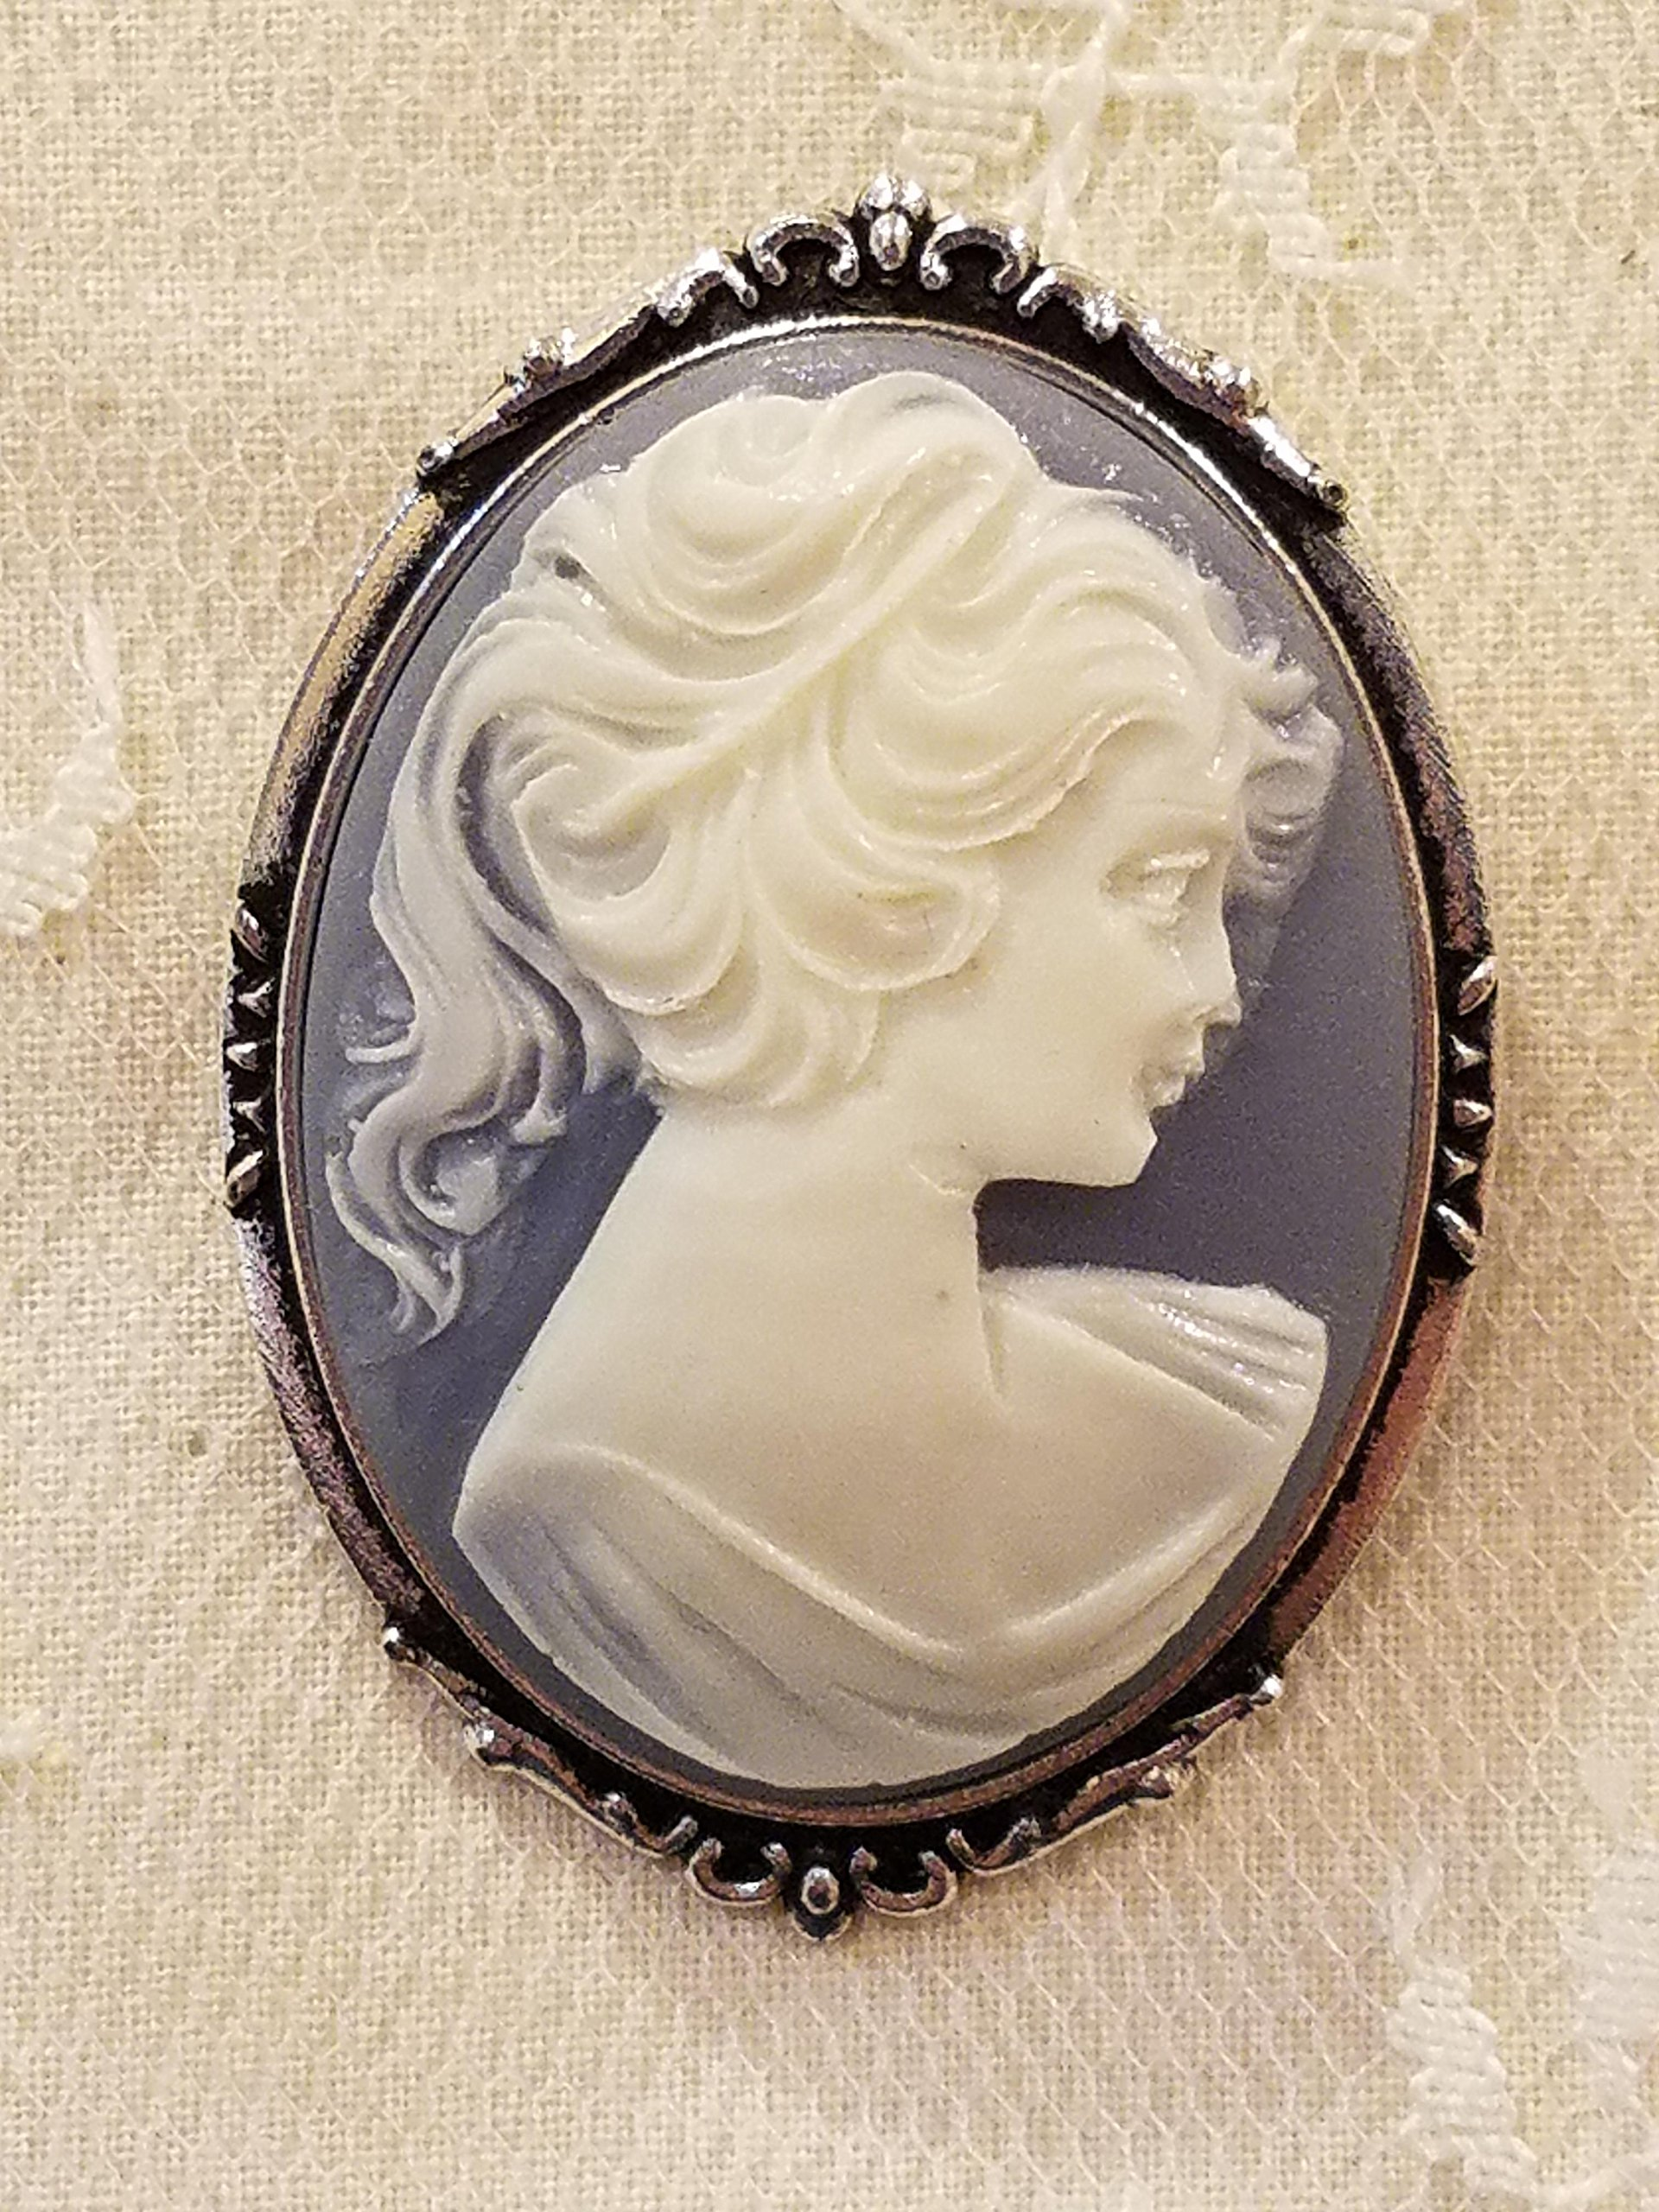 Blue and White Cameo Brooch Resin Silvertone Frame